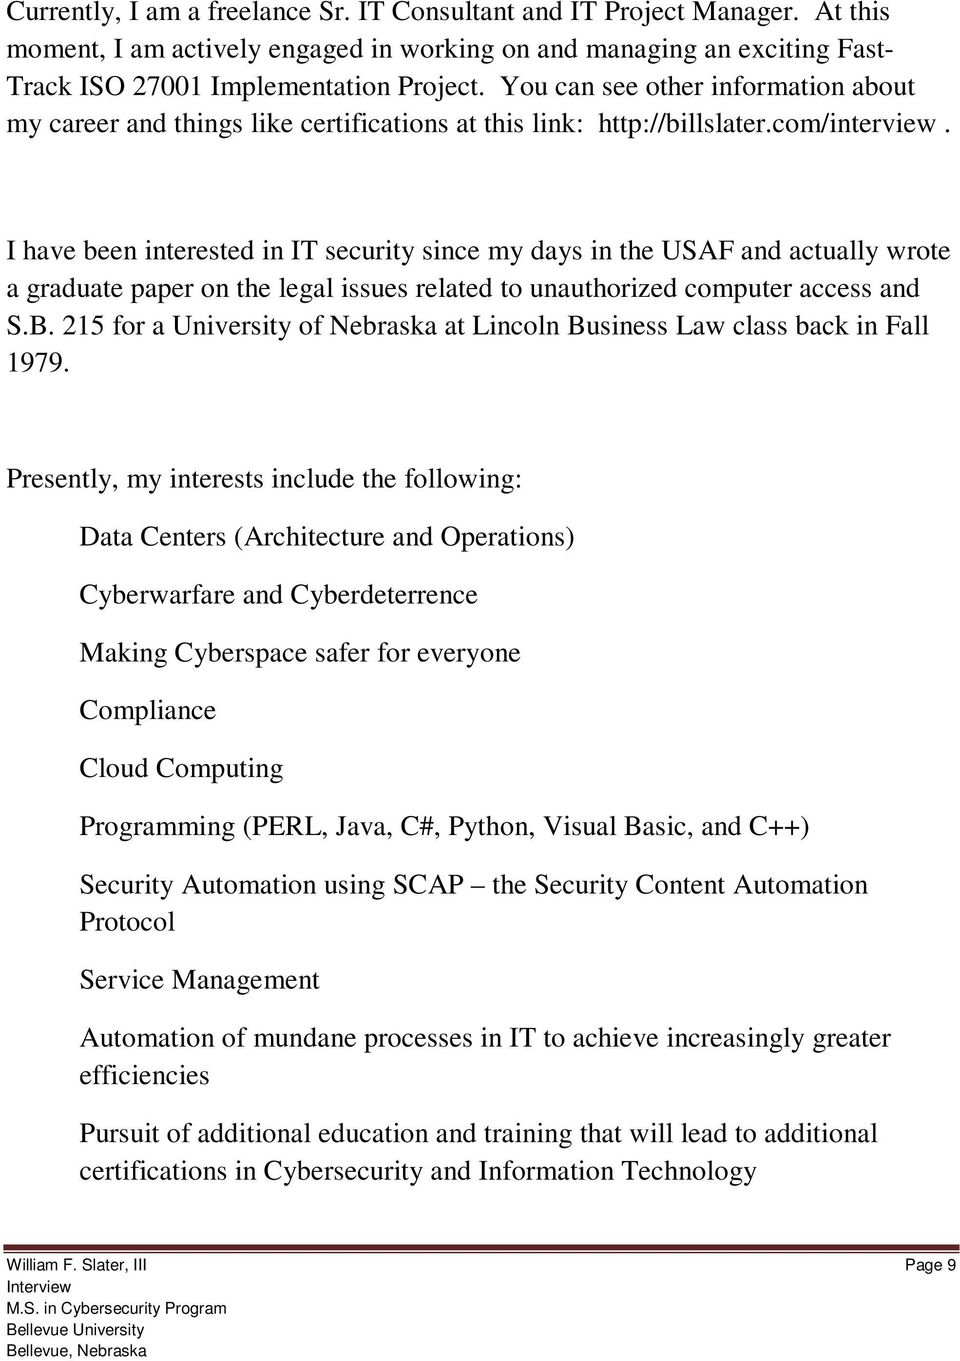 I have been interested in IT security since my days in the USAF and actually wrote a graduate paper on the legal issues related to unauthorized computer access and S.B.